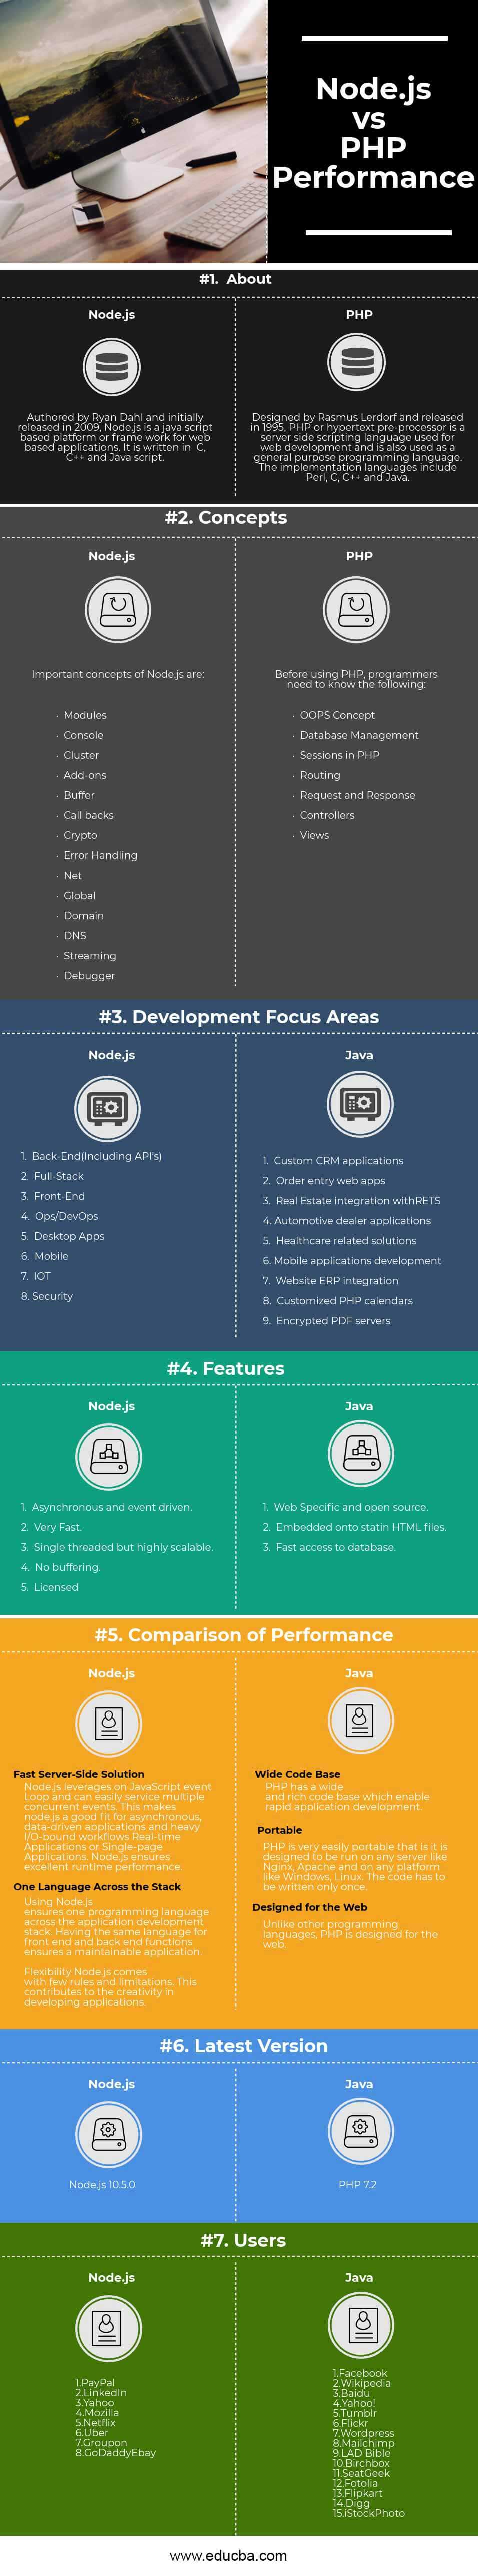 Node.js vs PHP Performance Infographics